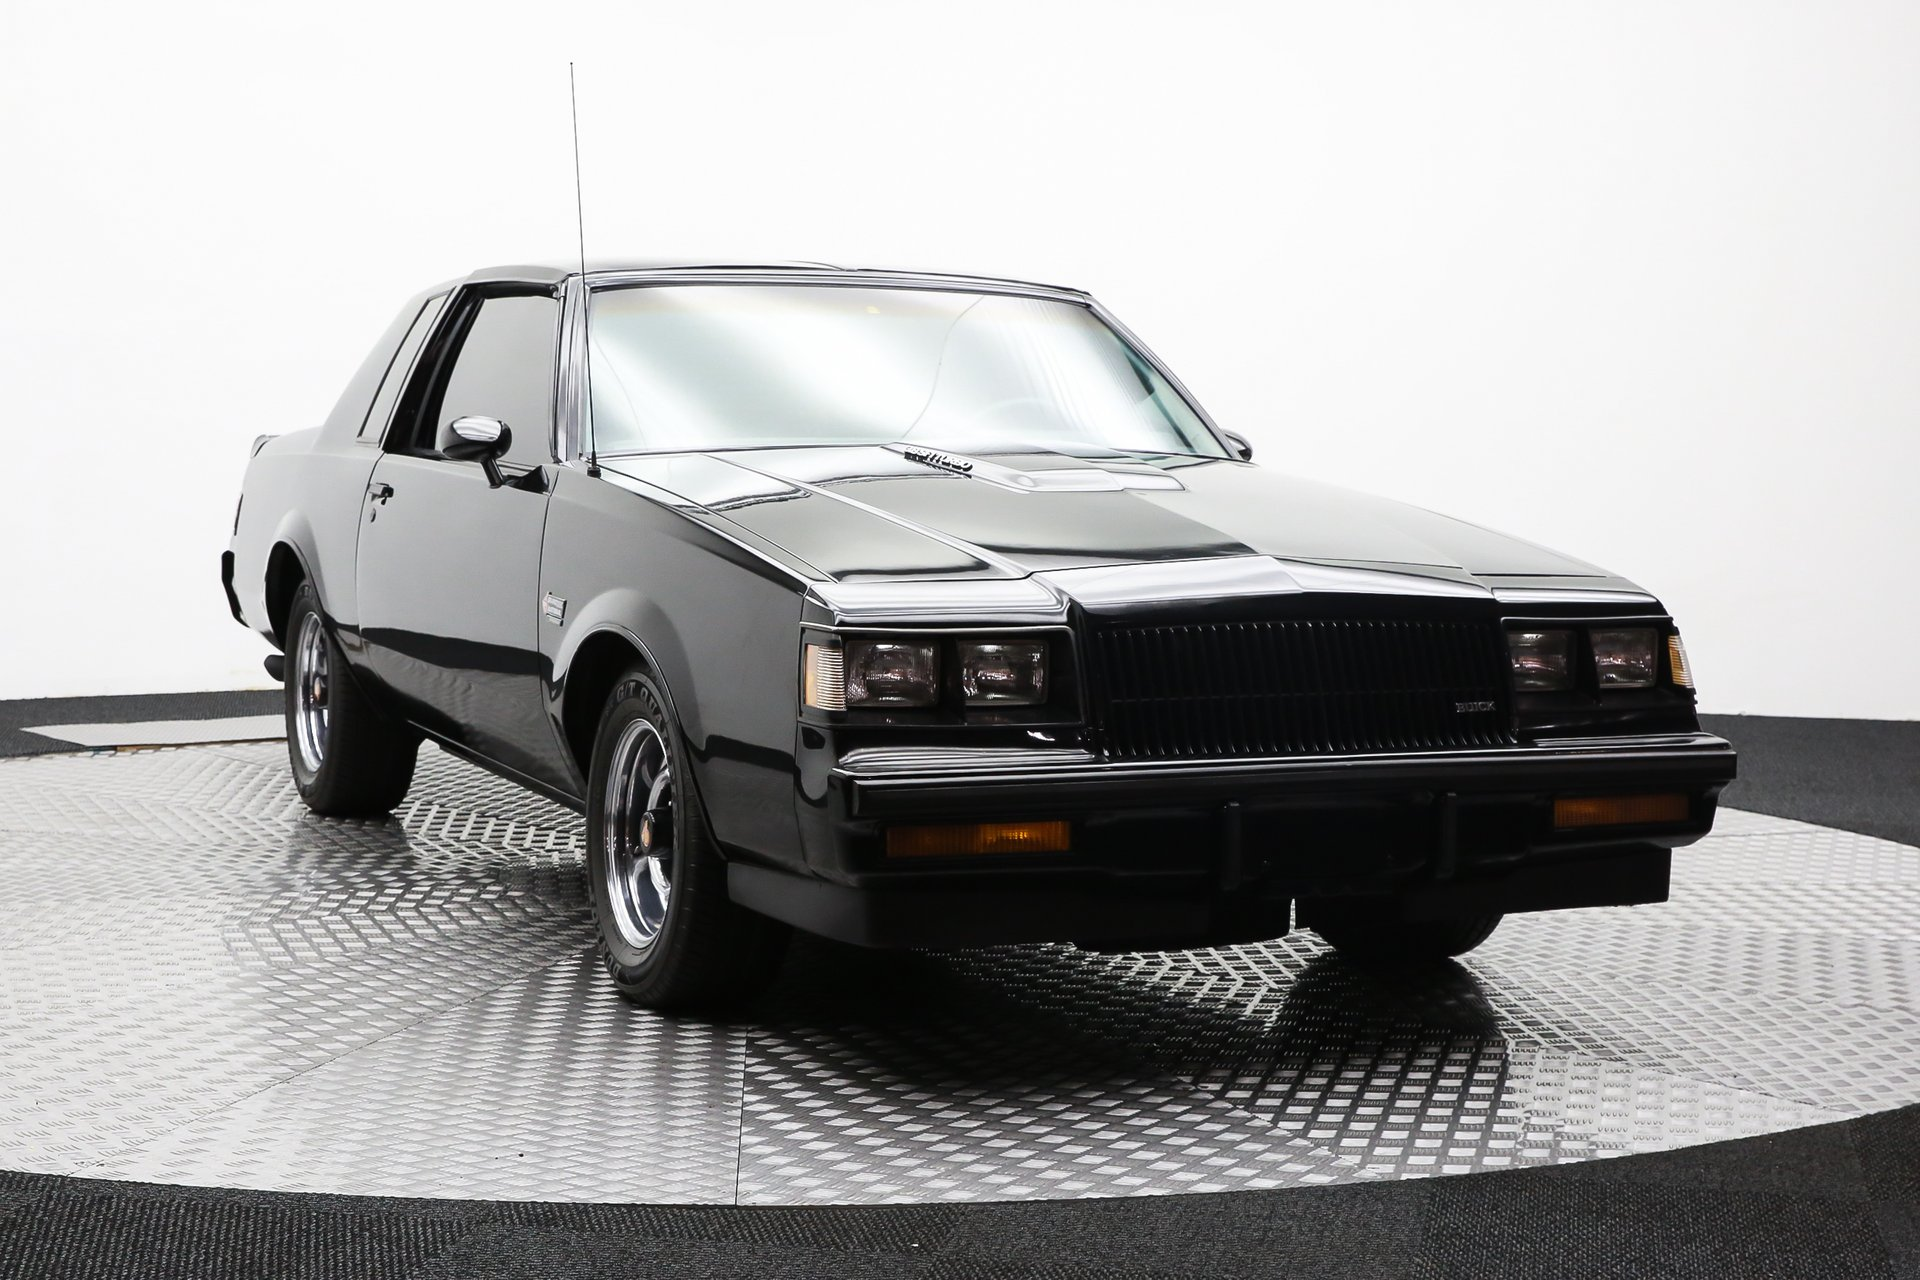 1987 Buick Grand National | GAA Classic Cars